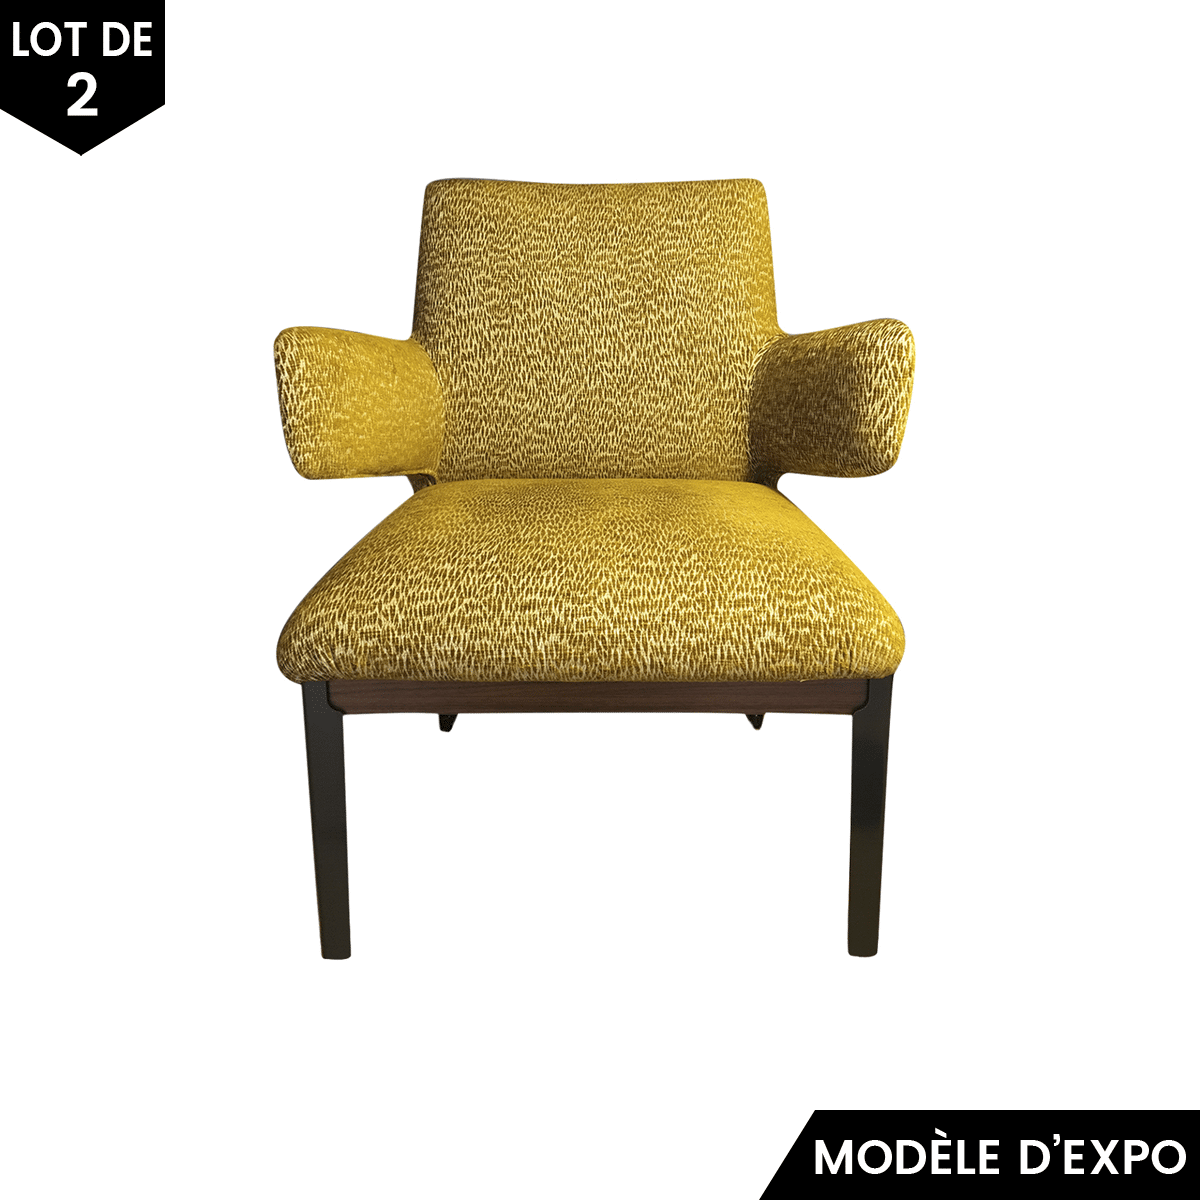 fauteuil hug jaune lot de 2 arflex pas cher grandes marques en promo sur zeeloft. Black Bedroom Furniture Sets. Home Design Ideas